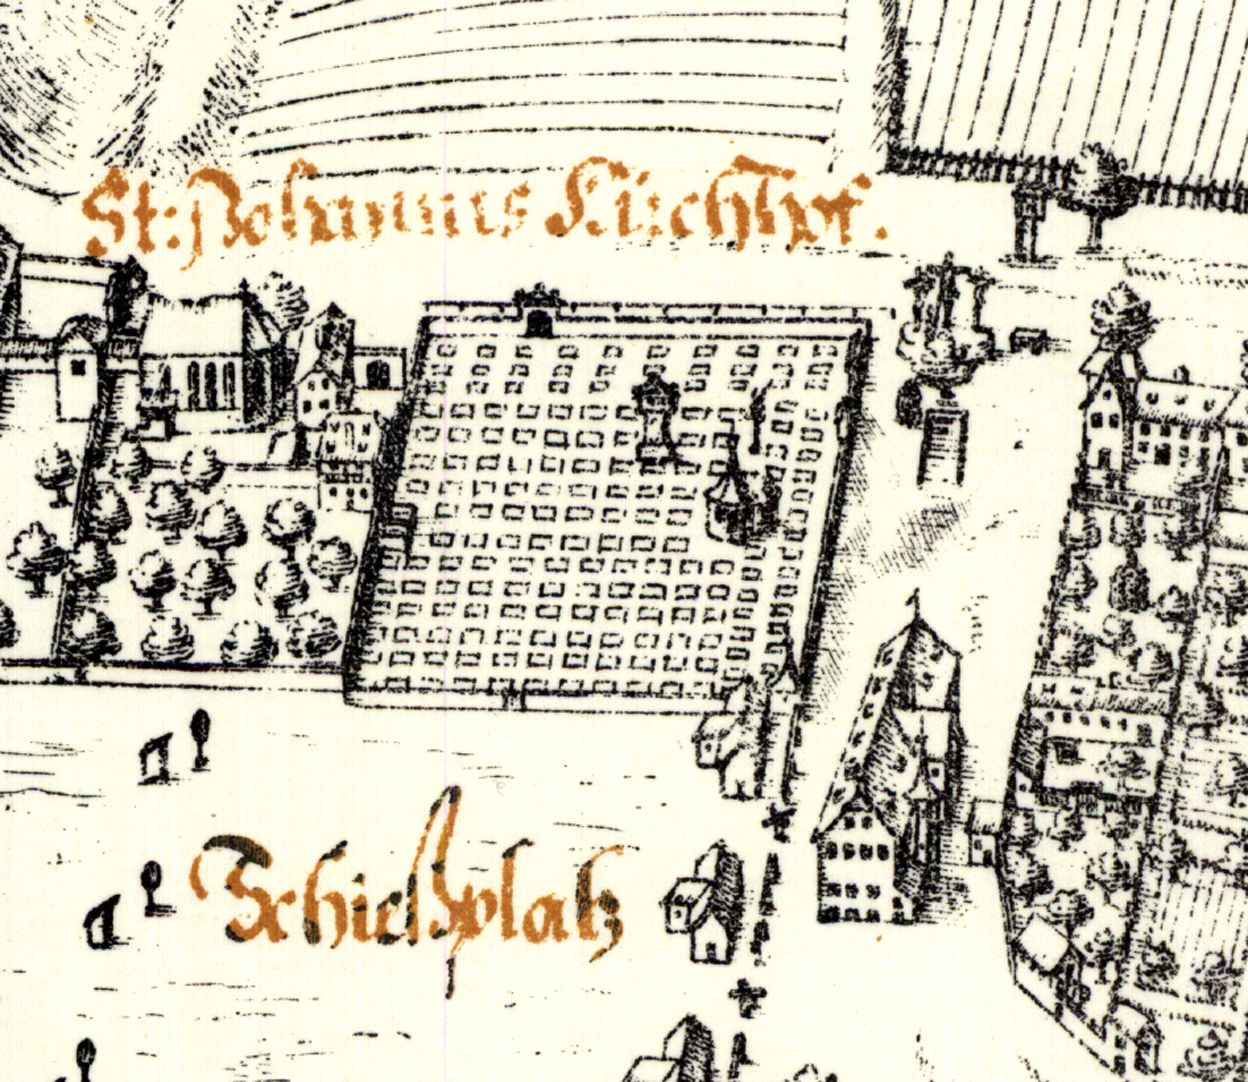 Kress´s map of Nuremberg with surrounding wall Johannis-cemetery from the south: quarter with Holzschuher Chapel and Münzer´s stele, separated by a wall Johannis-Church, on the right: garden houses, in between the former Shooting house (Schießhaus) of the rifle shots